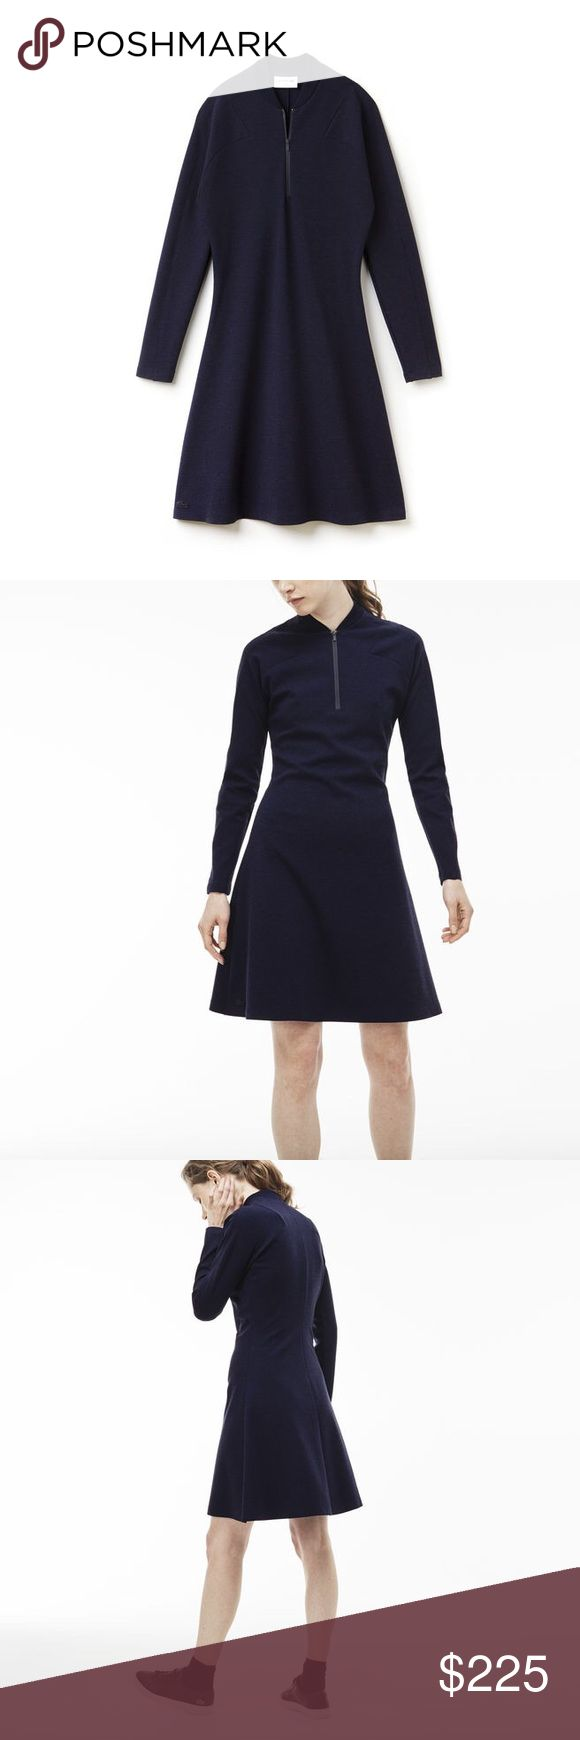 MILANO WOOL POLO DRESS in Marine color WOMEN'S MADE IN FRANCE ZIP NECK COLORBLOCK MILANO WOOL POLO DRESS EF7610-51 Inspired by the catwalk and made in France, this long polo dress in Milano wool features a bold zippered bomber neck. Colorblocks offer a crisp look.  Stretch wool blend Milano Bomber neck with contrast zipper Fitted at waist and slightly flared at bottom Colorblock Wool (100%) Lacoste Dresses Long Sleeve